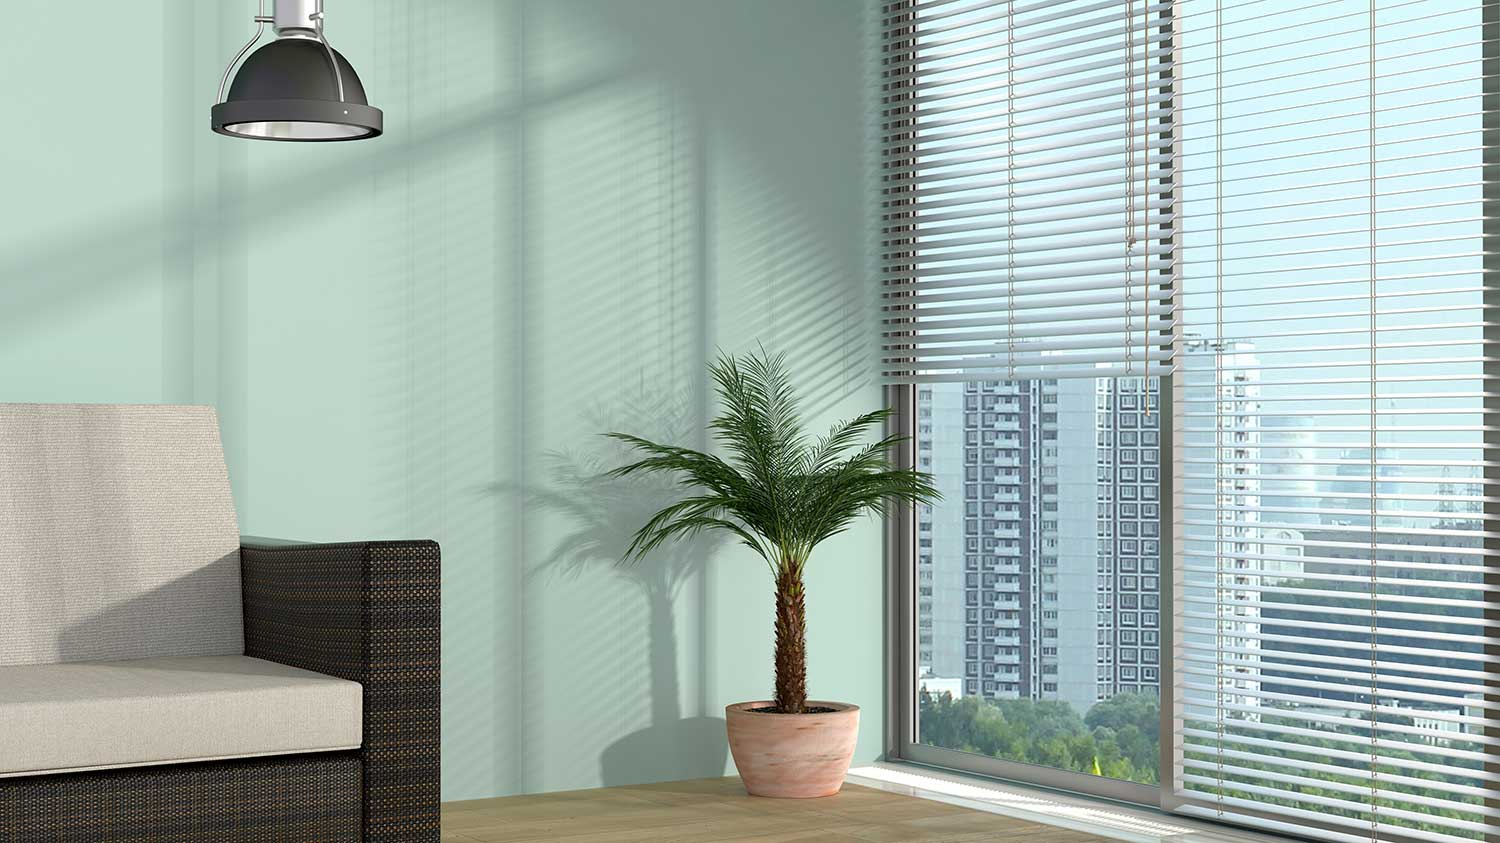 Modern interior room with potted palm tree and view of the city on glass window